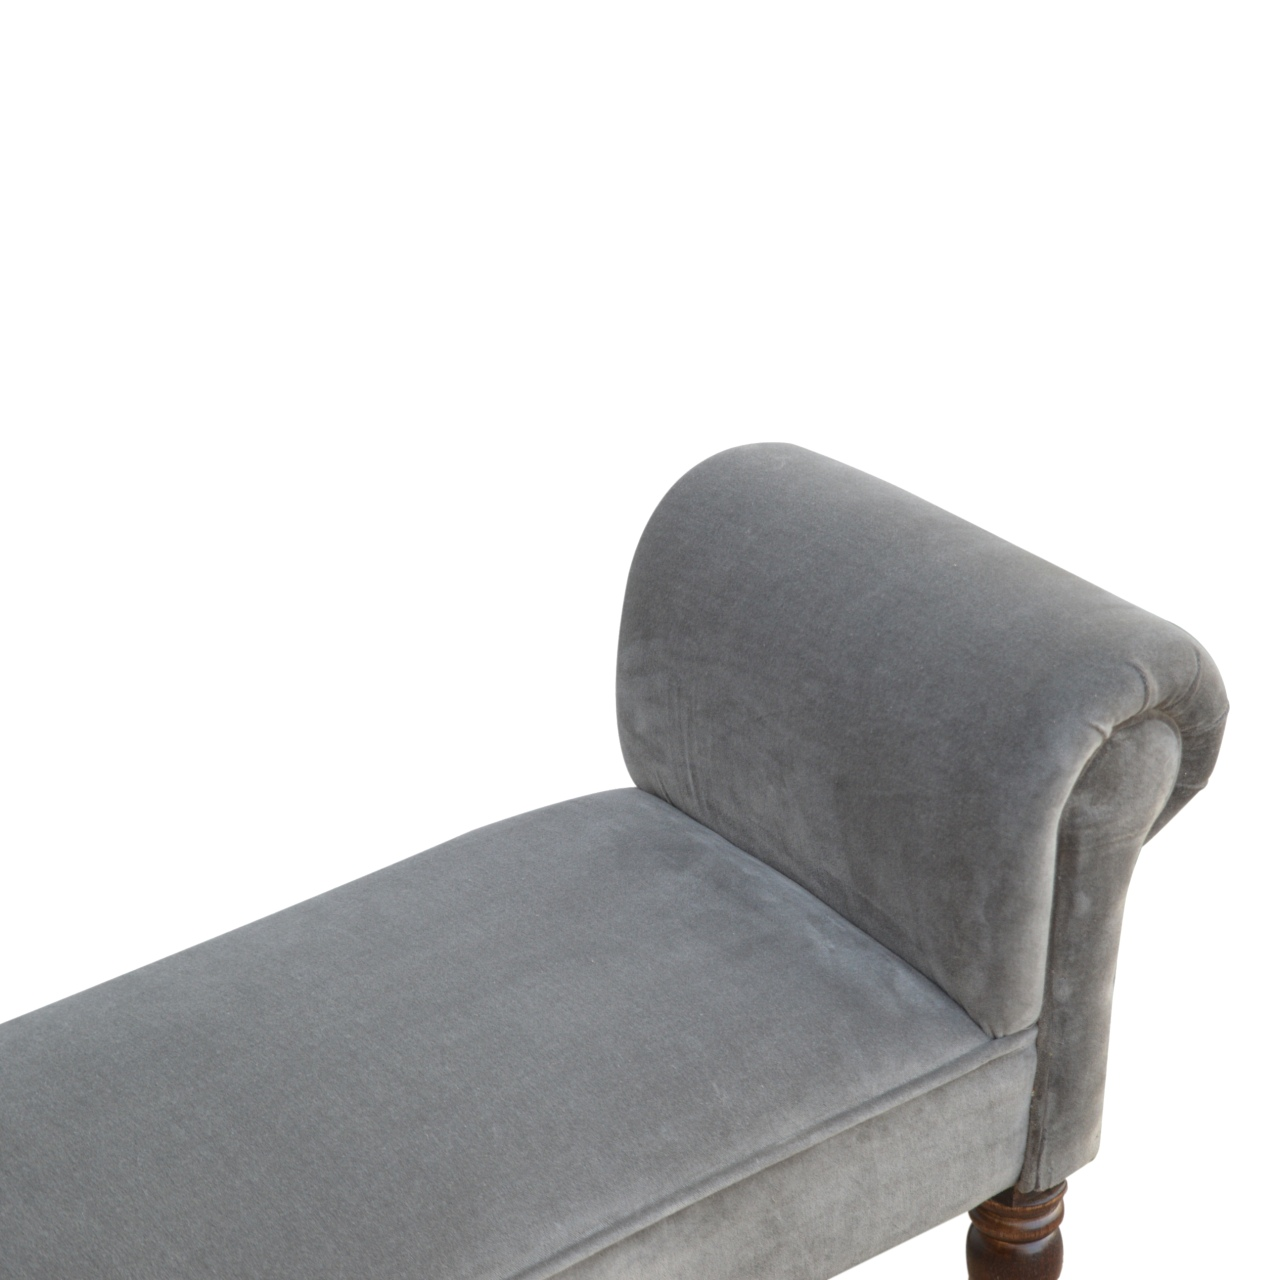 The Home Furnishings Company Grey Velvet Bench